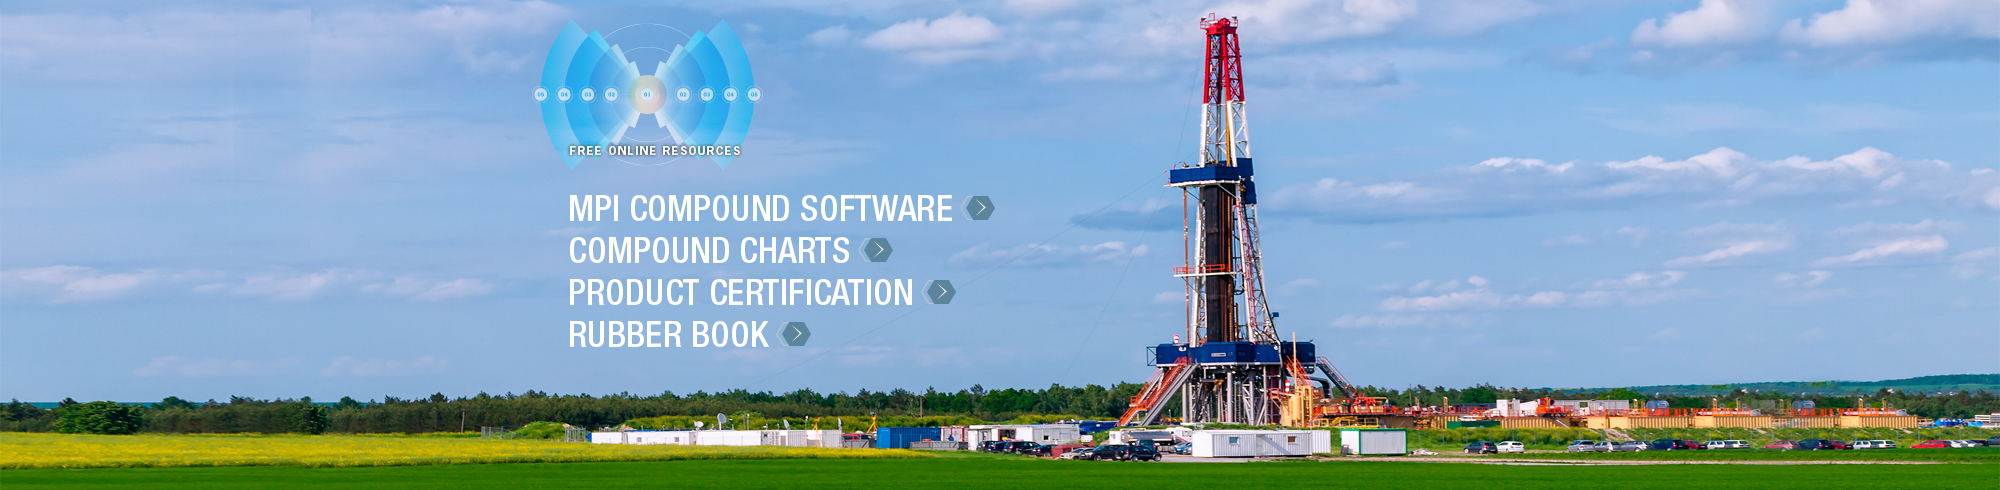 Oilfield Resources